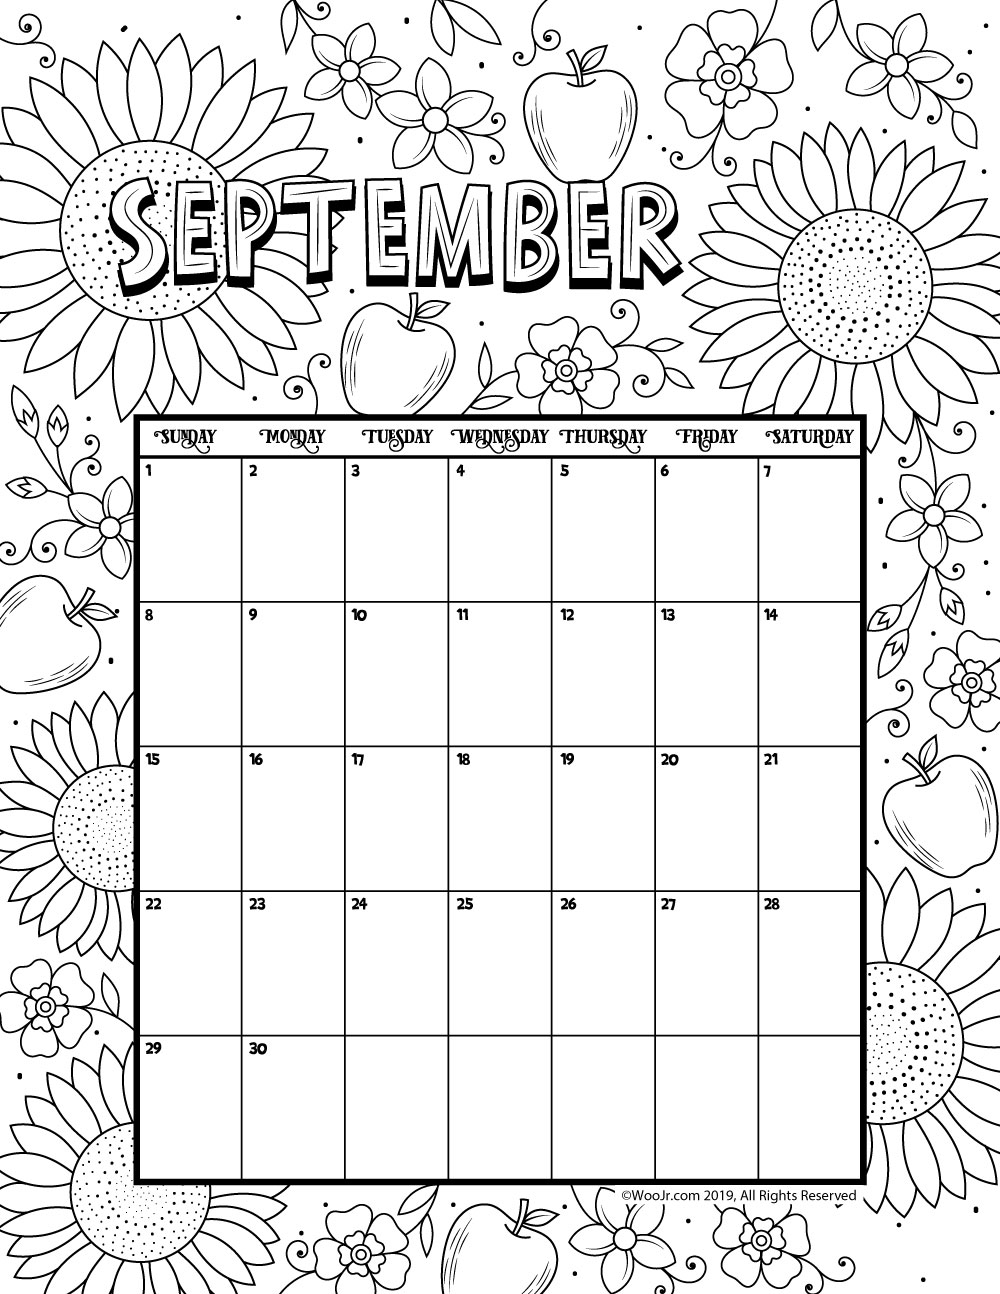 september printable coloring pages - photo#33